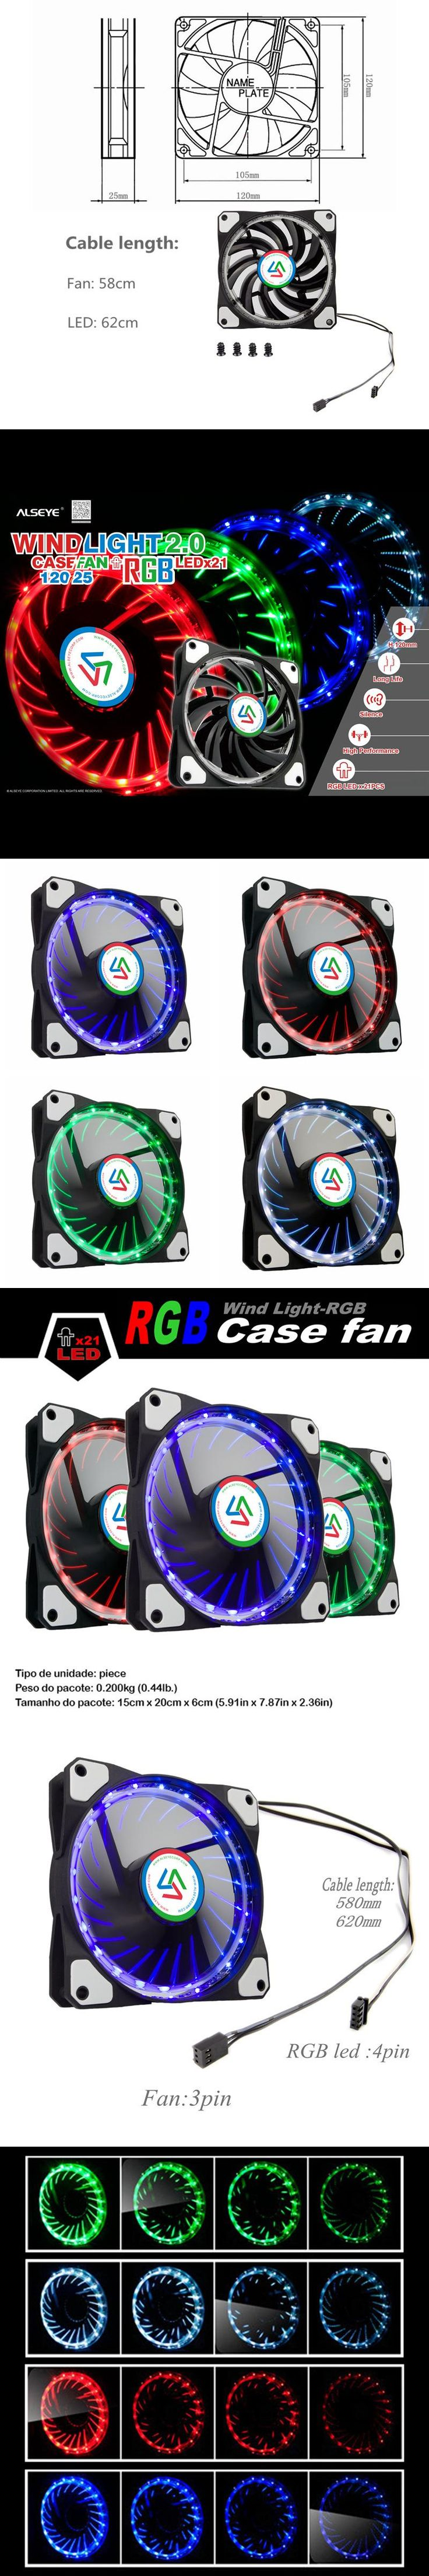 ALSEYE 120mm RGB LED Computer Fan for PC Case / CPU Cooler / Water Cooling Radiator 12v 1100RPM Case Light Multicolor LED fan